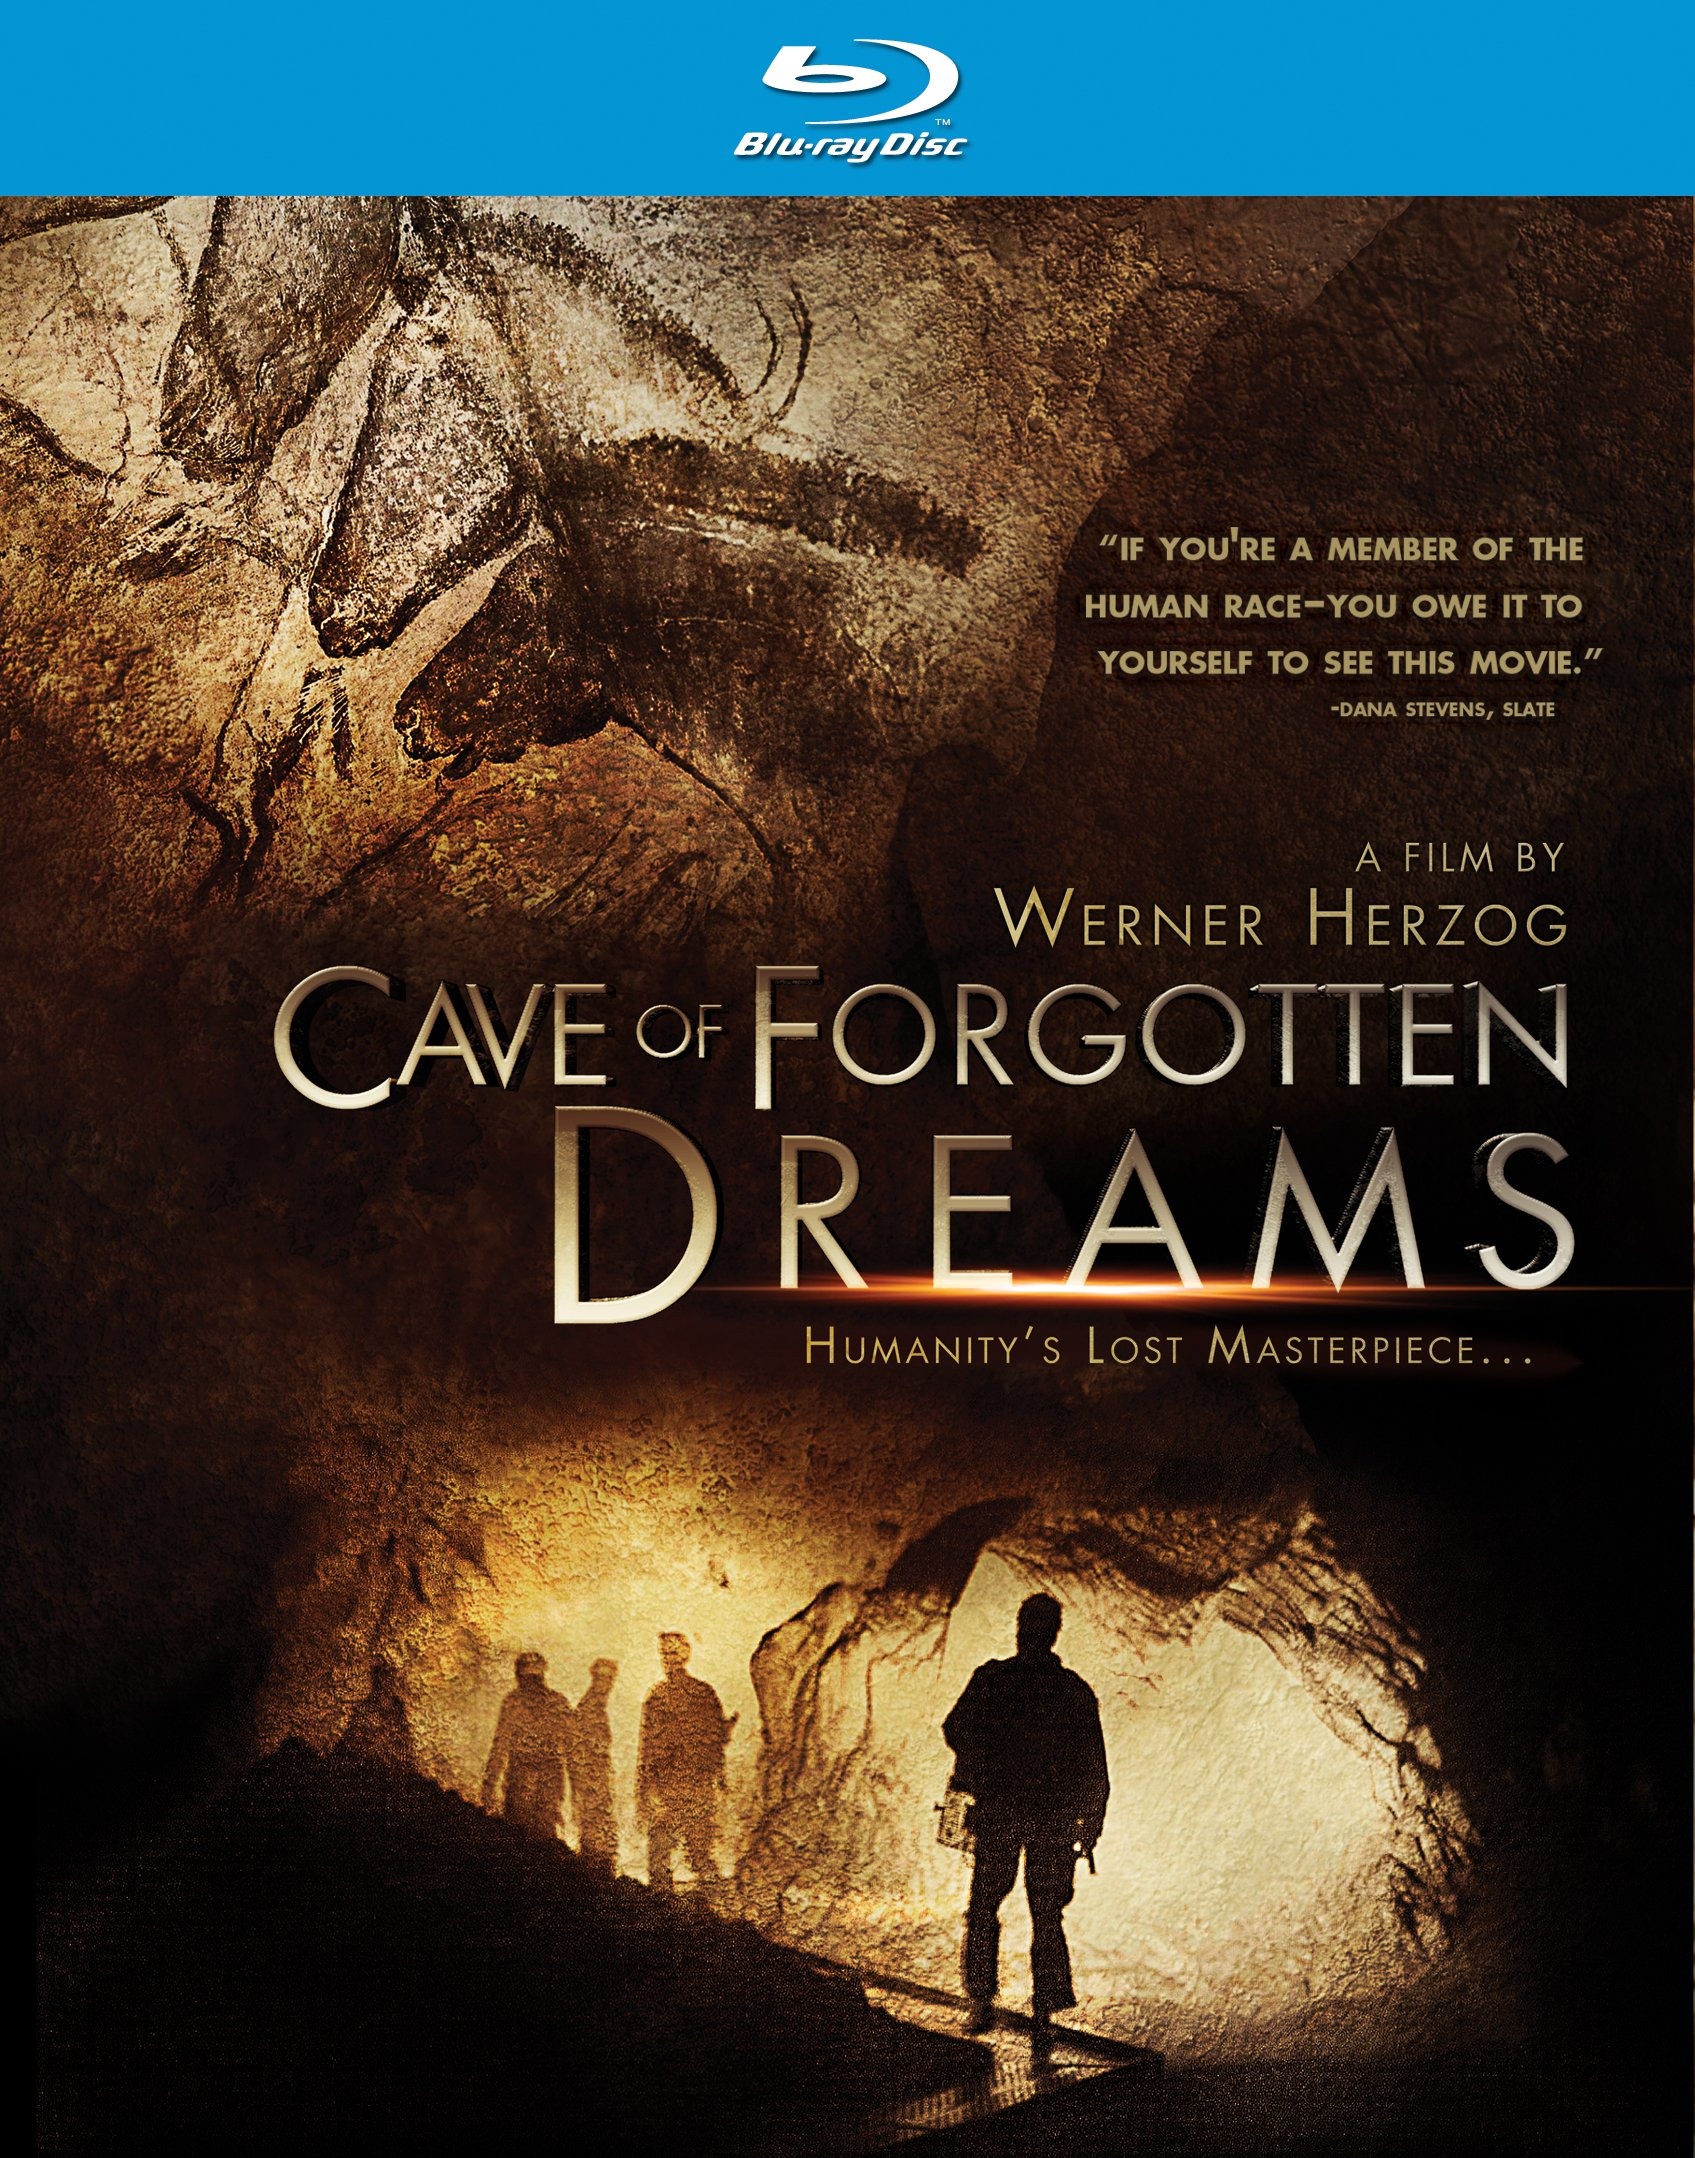 Cave of Forgotten Dreams DVD Release Date November 29, 2011